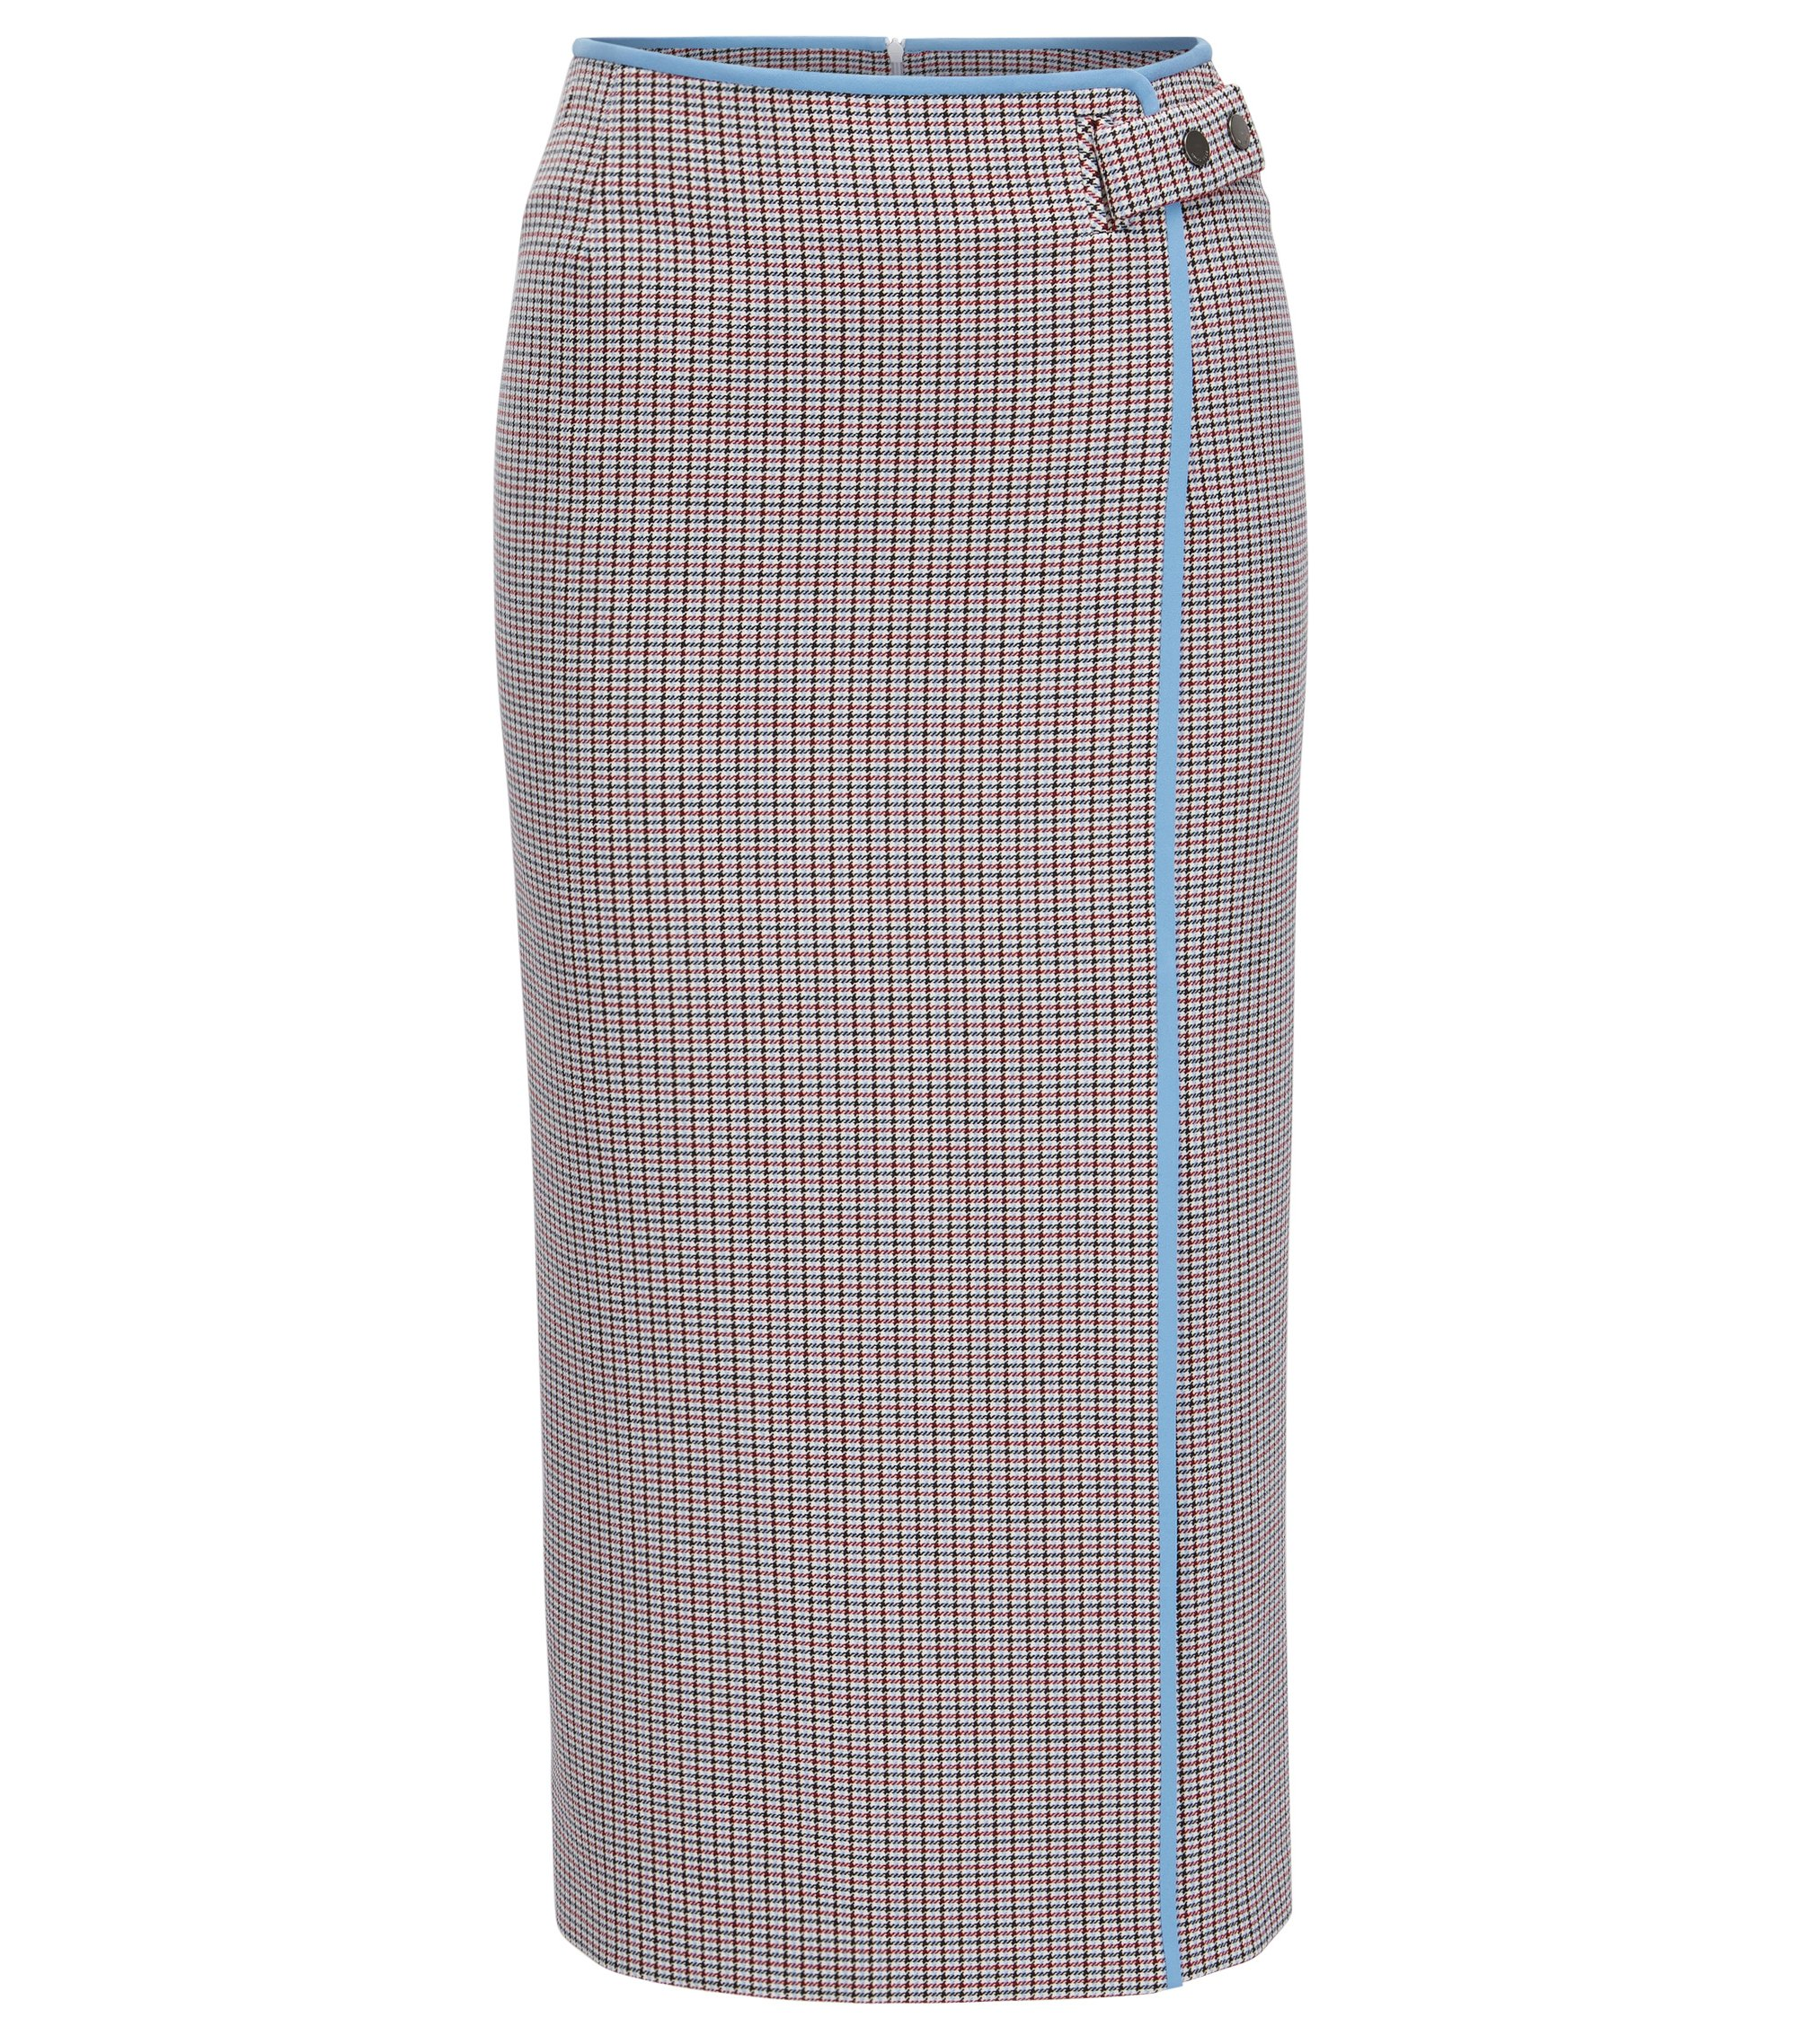 Pencil skirt in double-faced fabric, Patterned